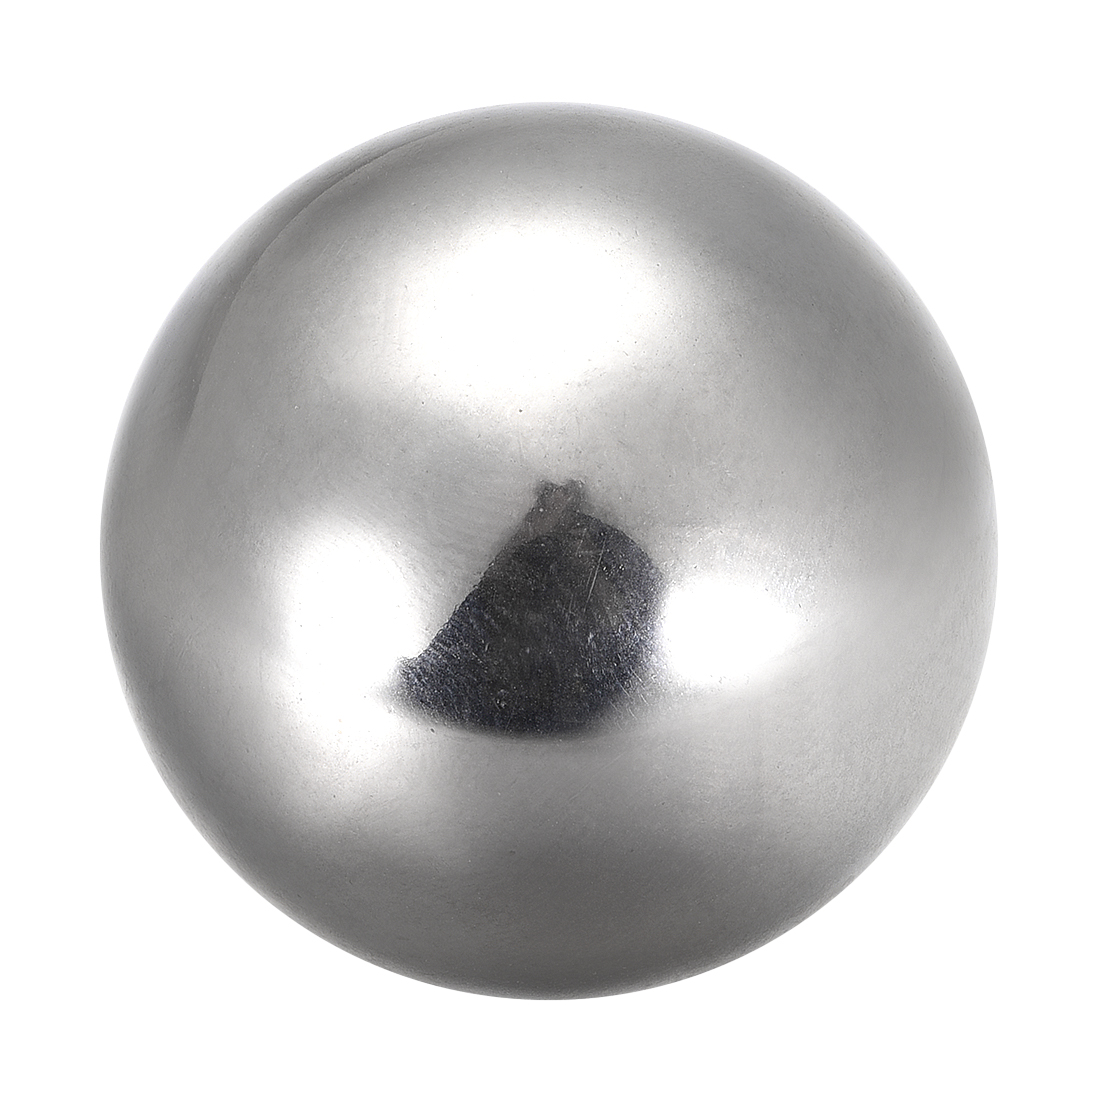 Precision 304 Stainless Steel Bearing Balls 1-3/4 Inch G5